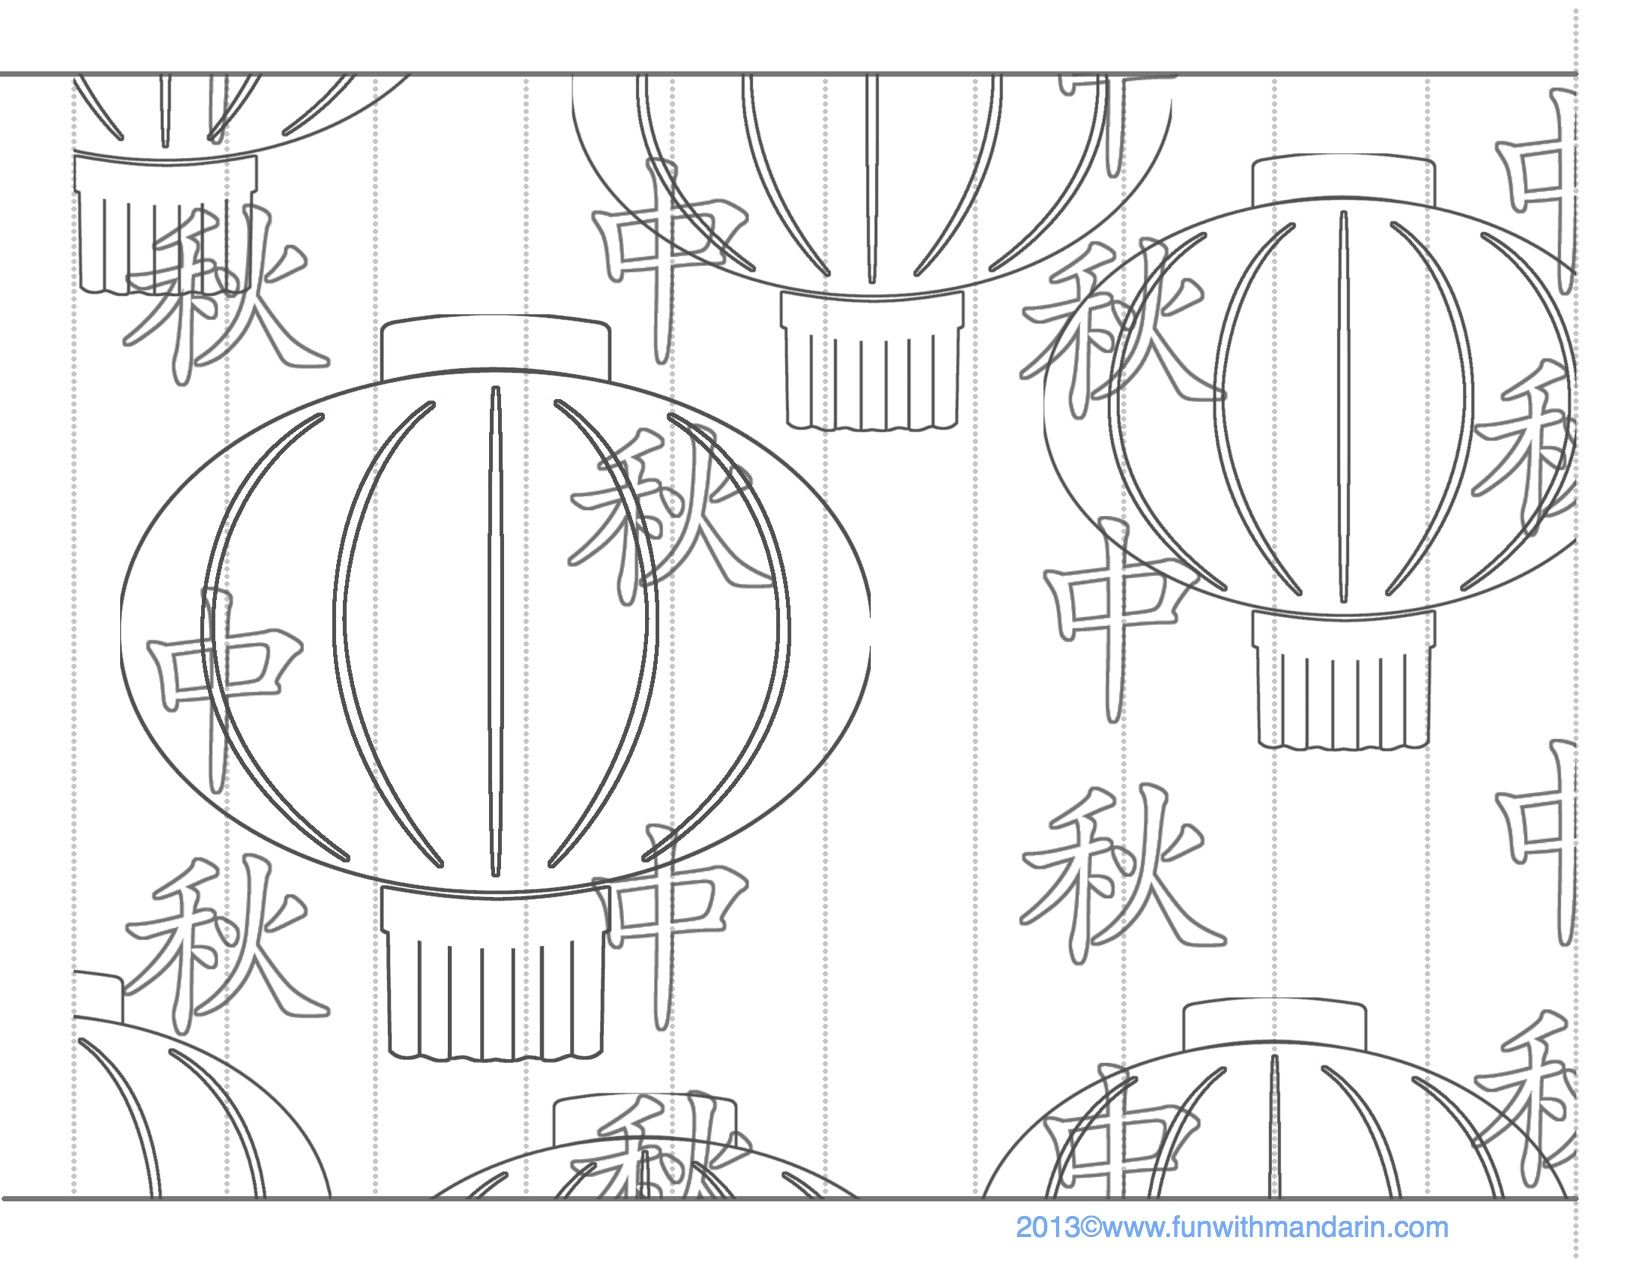 chinese new year lantern template printable - mid autumn festival moon festival lantern craft mid